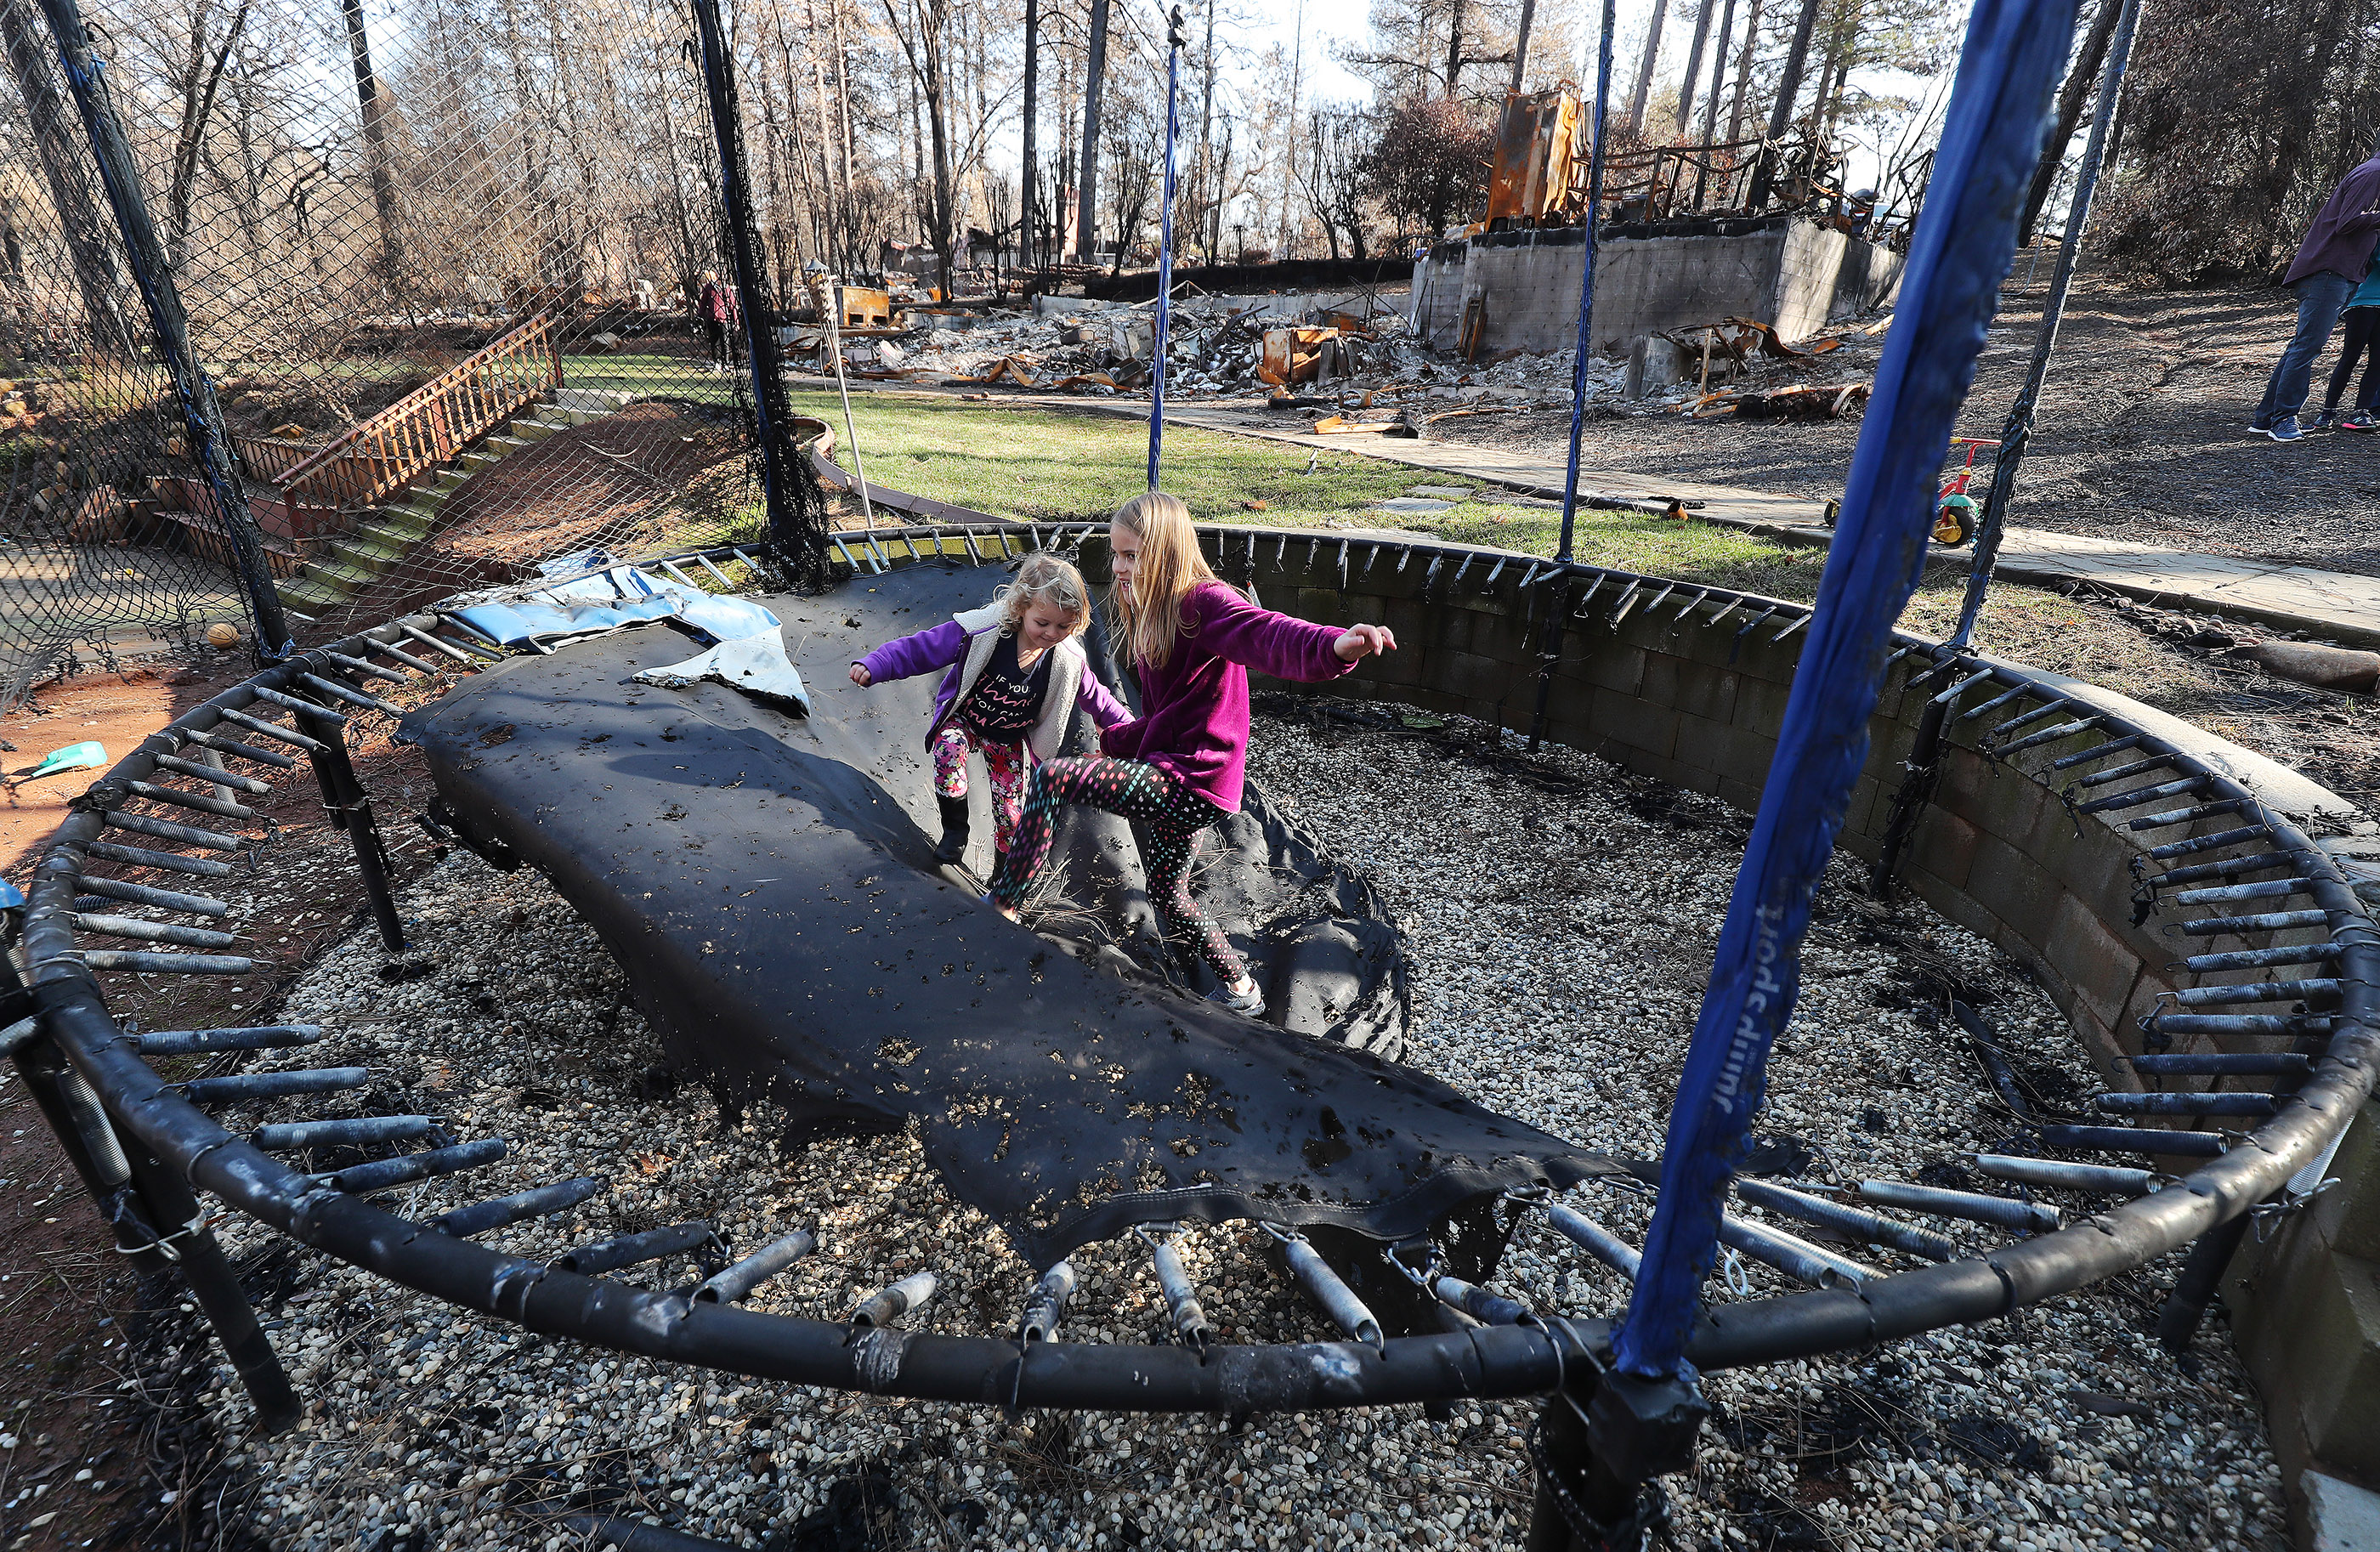 Aylee and DeLynn Chatfield play in their burned trampoline in Paradise, California, on Saturday, Jan. 12, 2019, two months after the Camp Fire destroyed more than 18,000 homes and businesses.